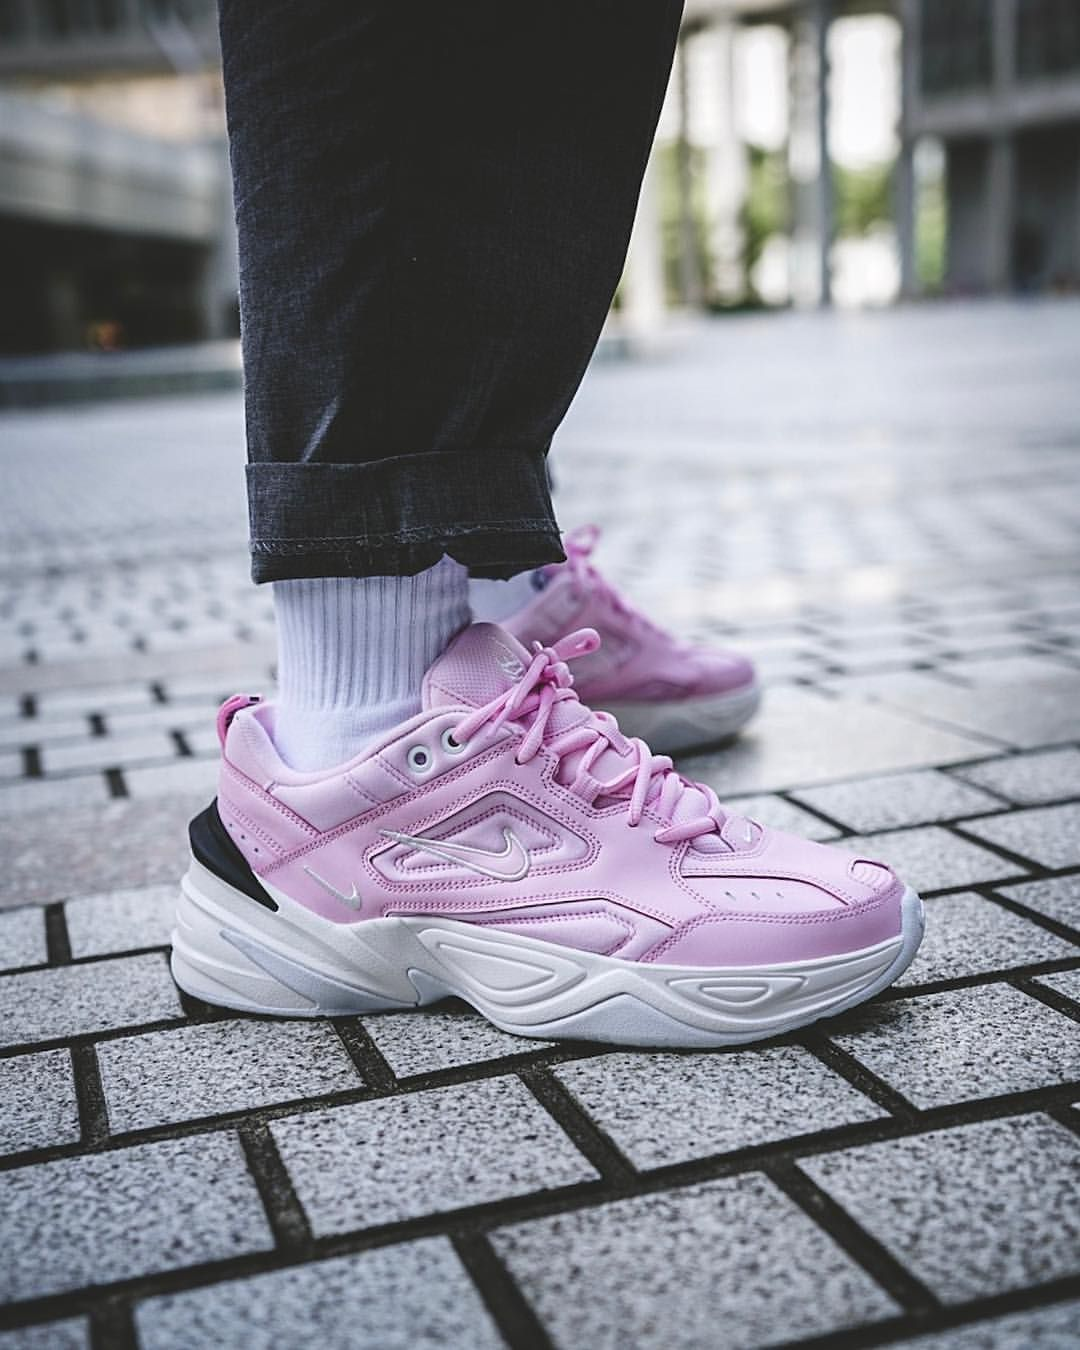 Nike M2k Tekno Pink Pink Nike Shoes Pink Shoes Outfit Nike Outfits